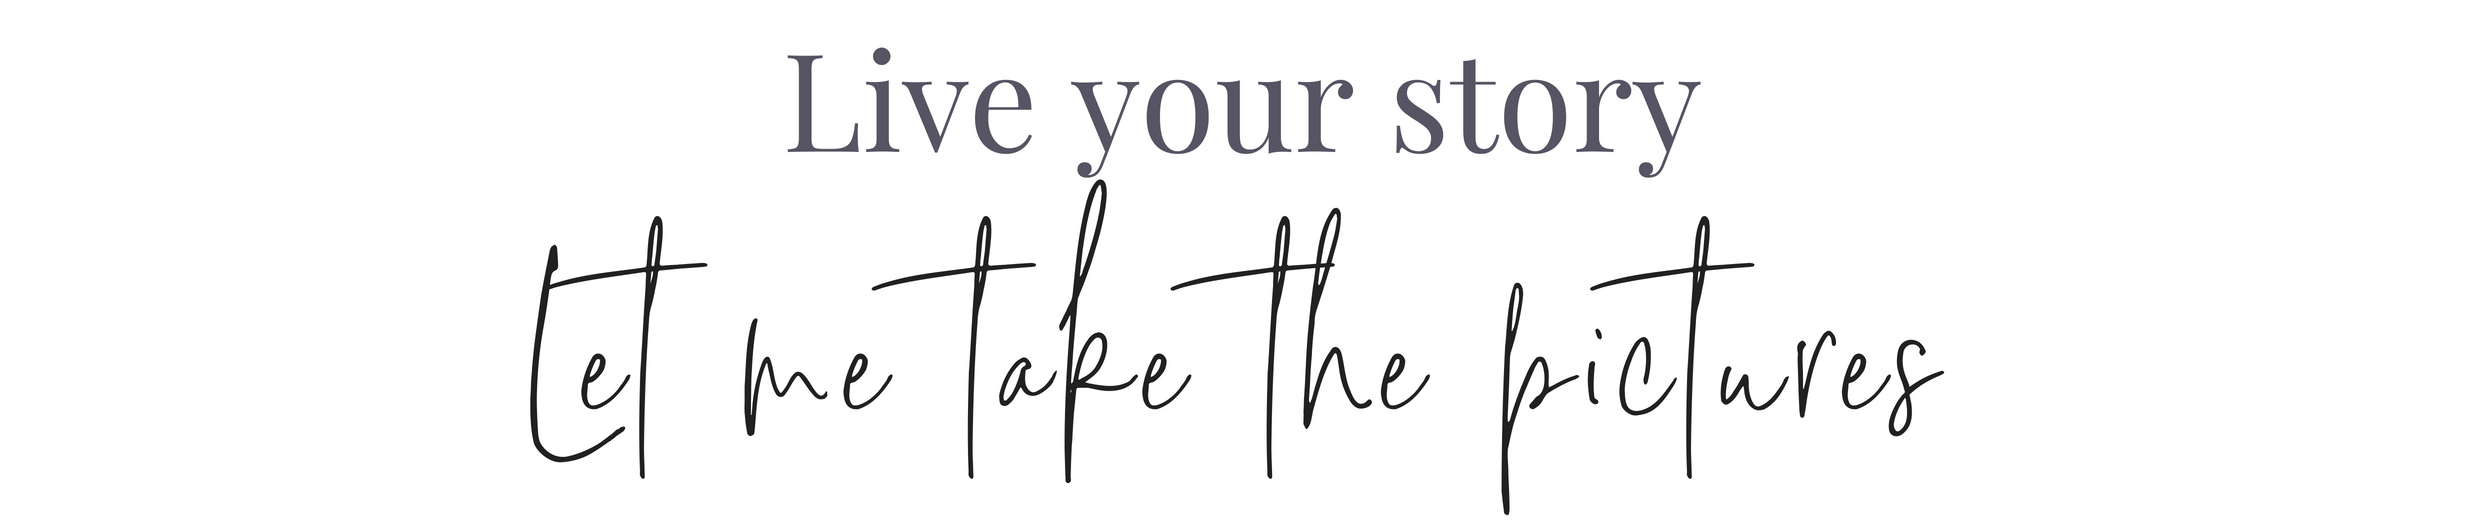 Live your story header